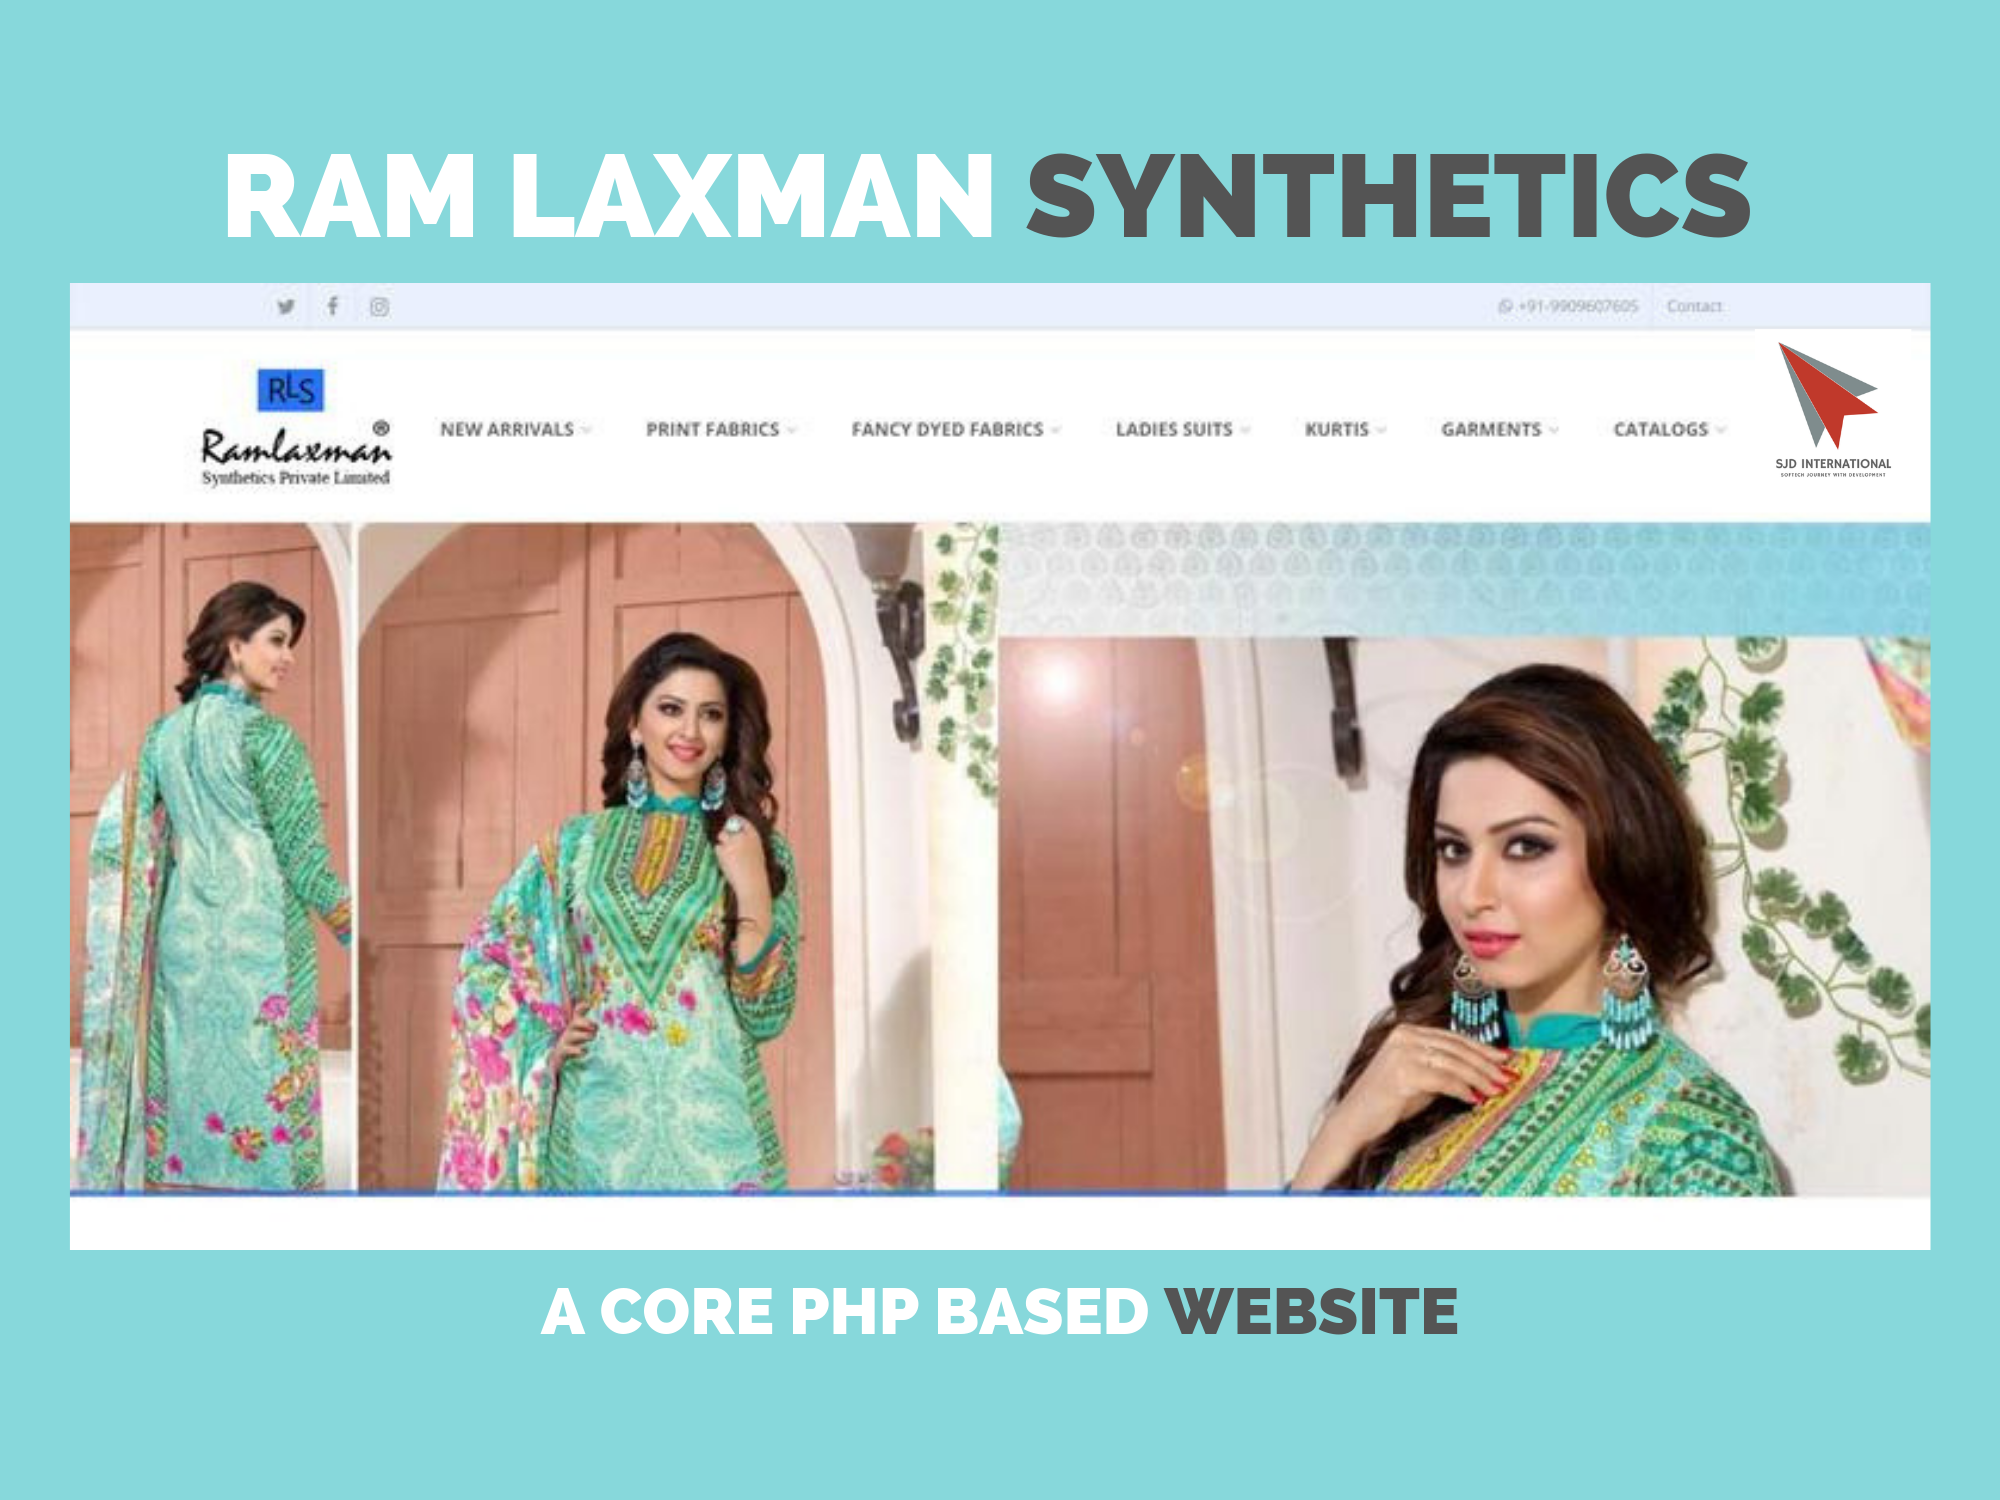 Ram Laxman Synthetics